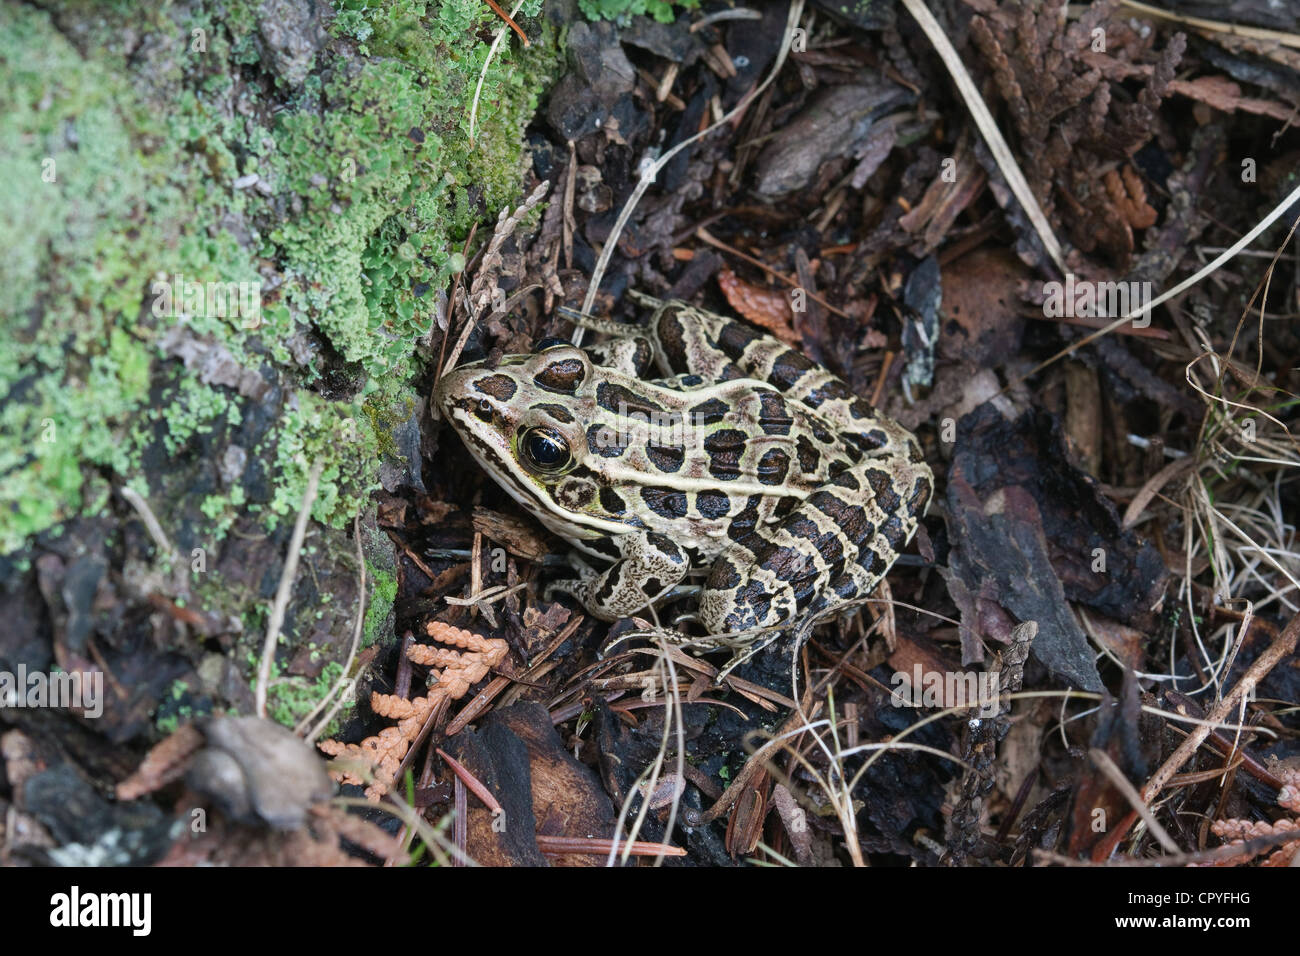 Northern Leopard Frog Rana pipiens resting on ground next to lichen-covered rock E USA Stock Photo